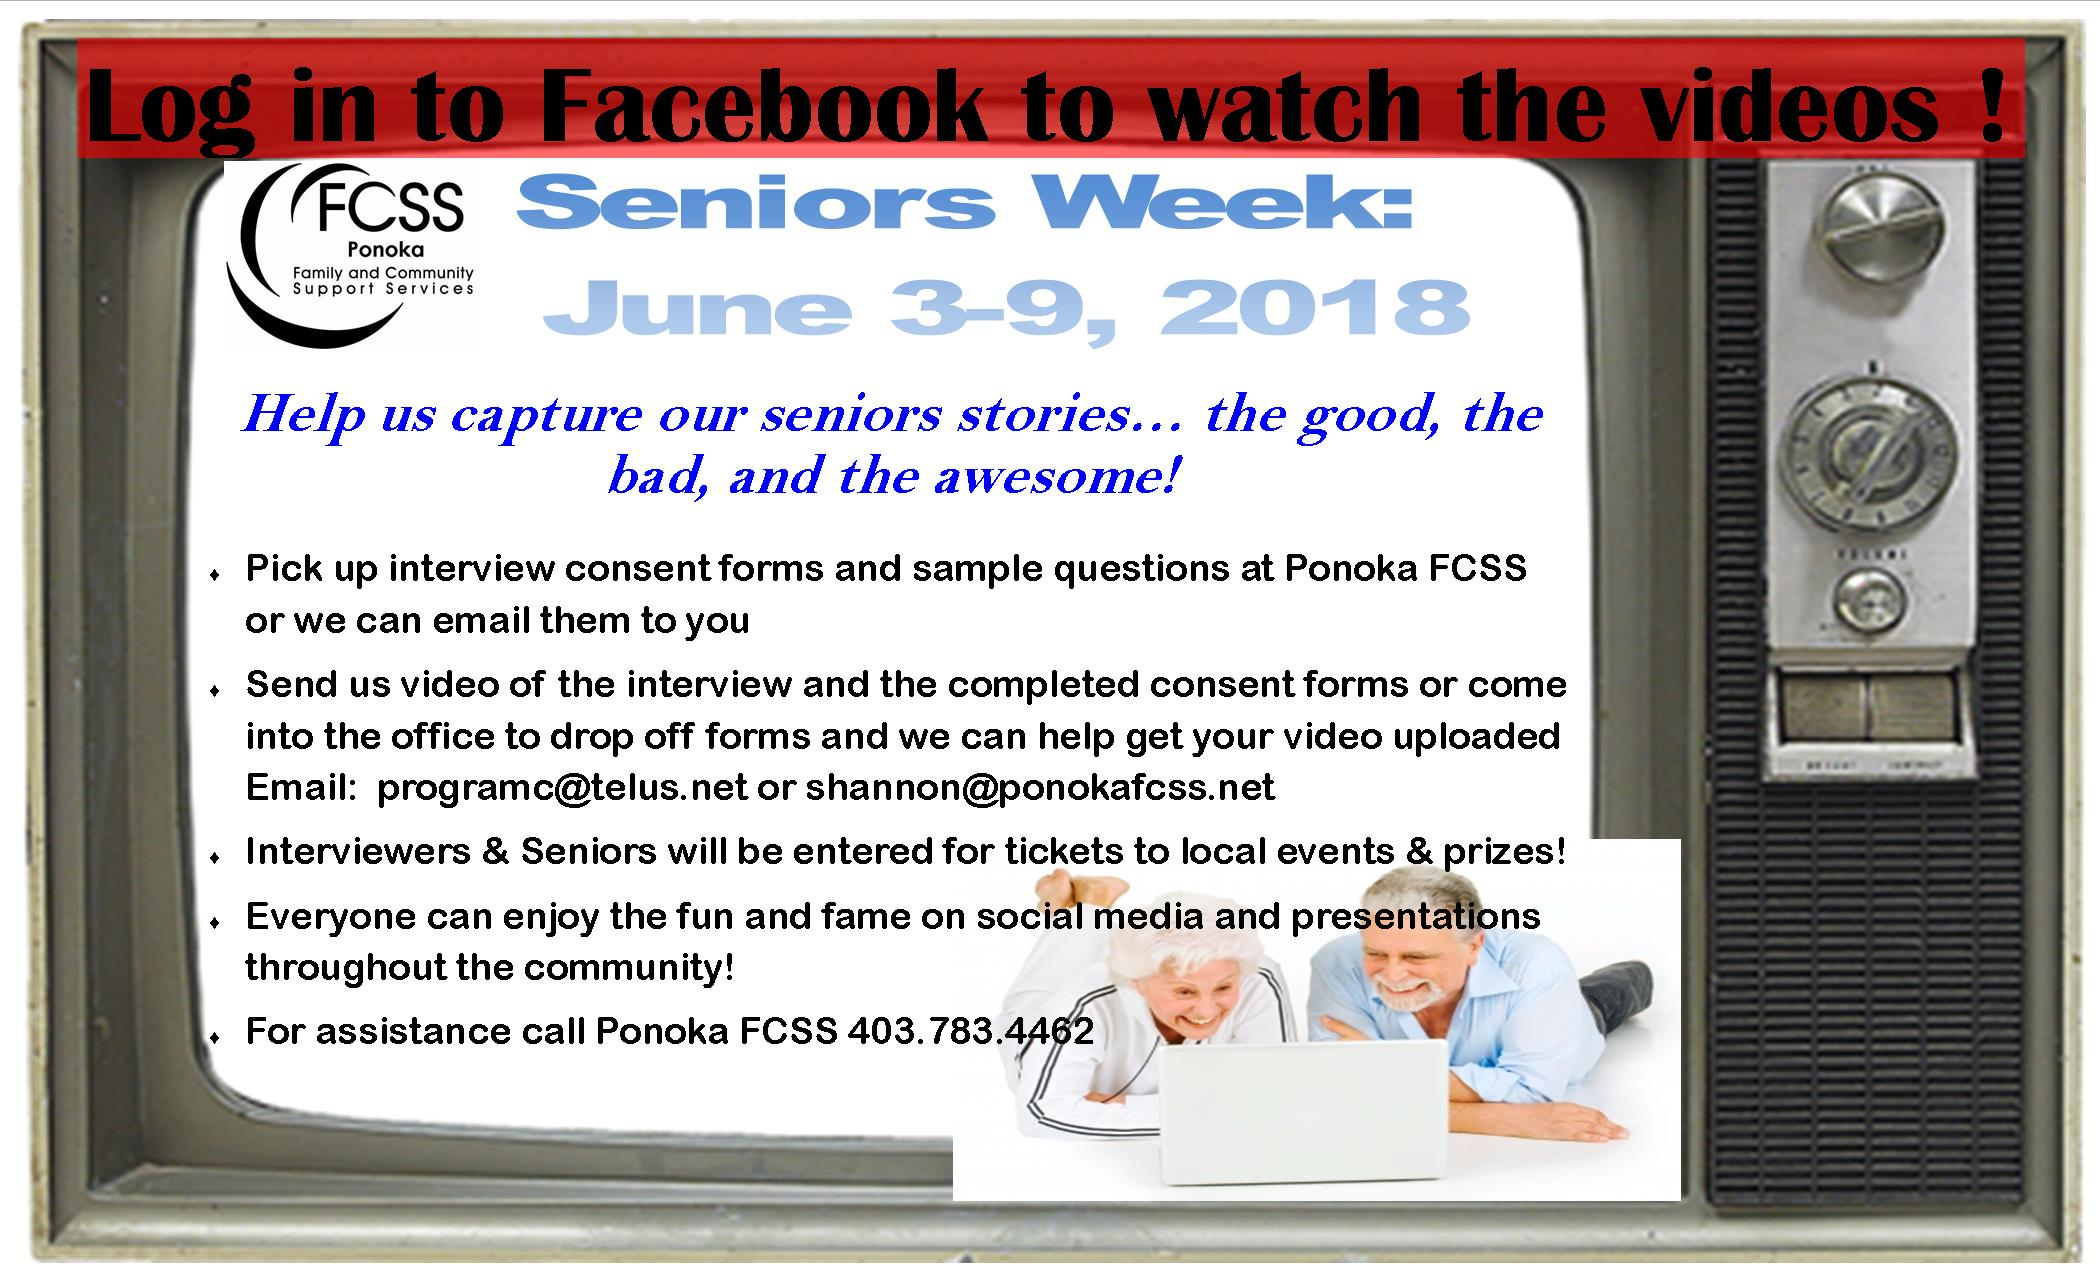 Senior's Week 2018. Contact 403-783-4462 for details.